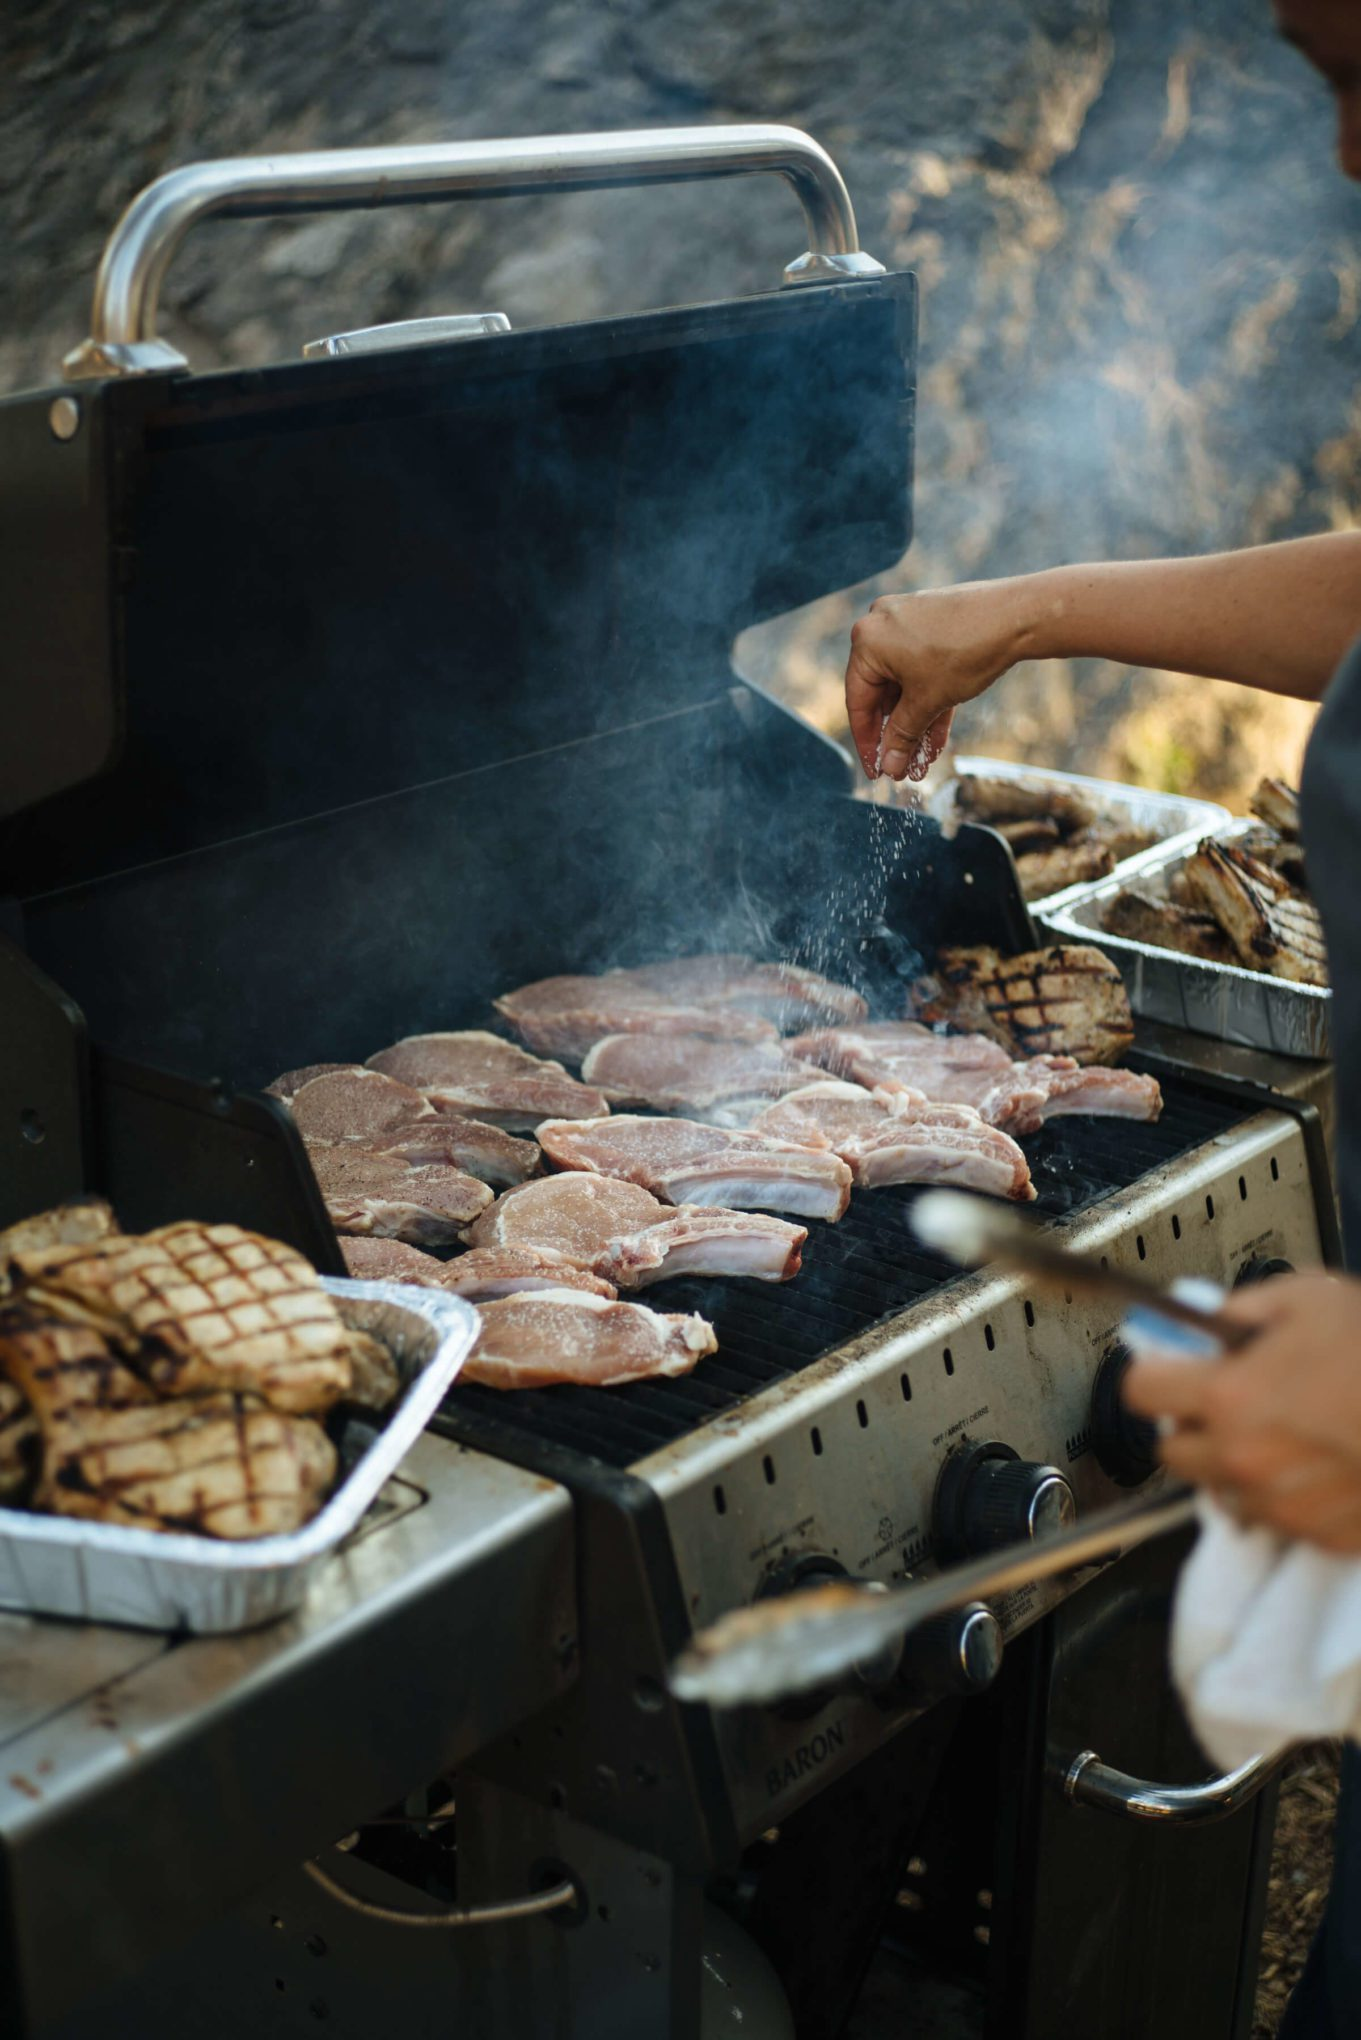 The Taste SF is excited to grill and recommends these grilling cookbooks, grilling tools, and recipes. See how to grill Pork Chops in Montana with Chefs from Ox Restaurant in Portland, Greg Denton and Gabi Denton, at The Resort at Paws Up.